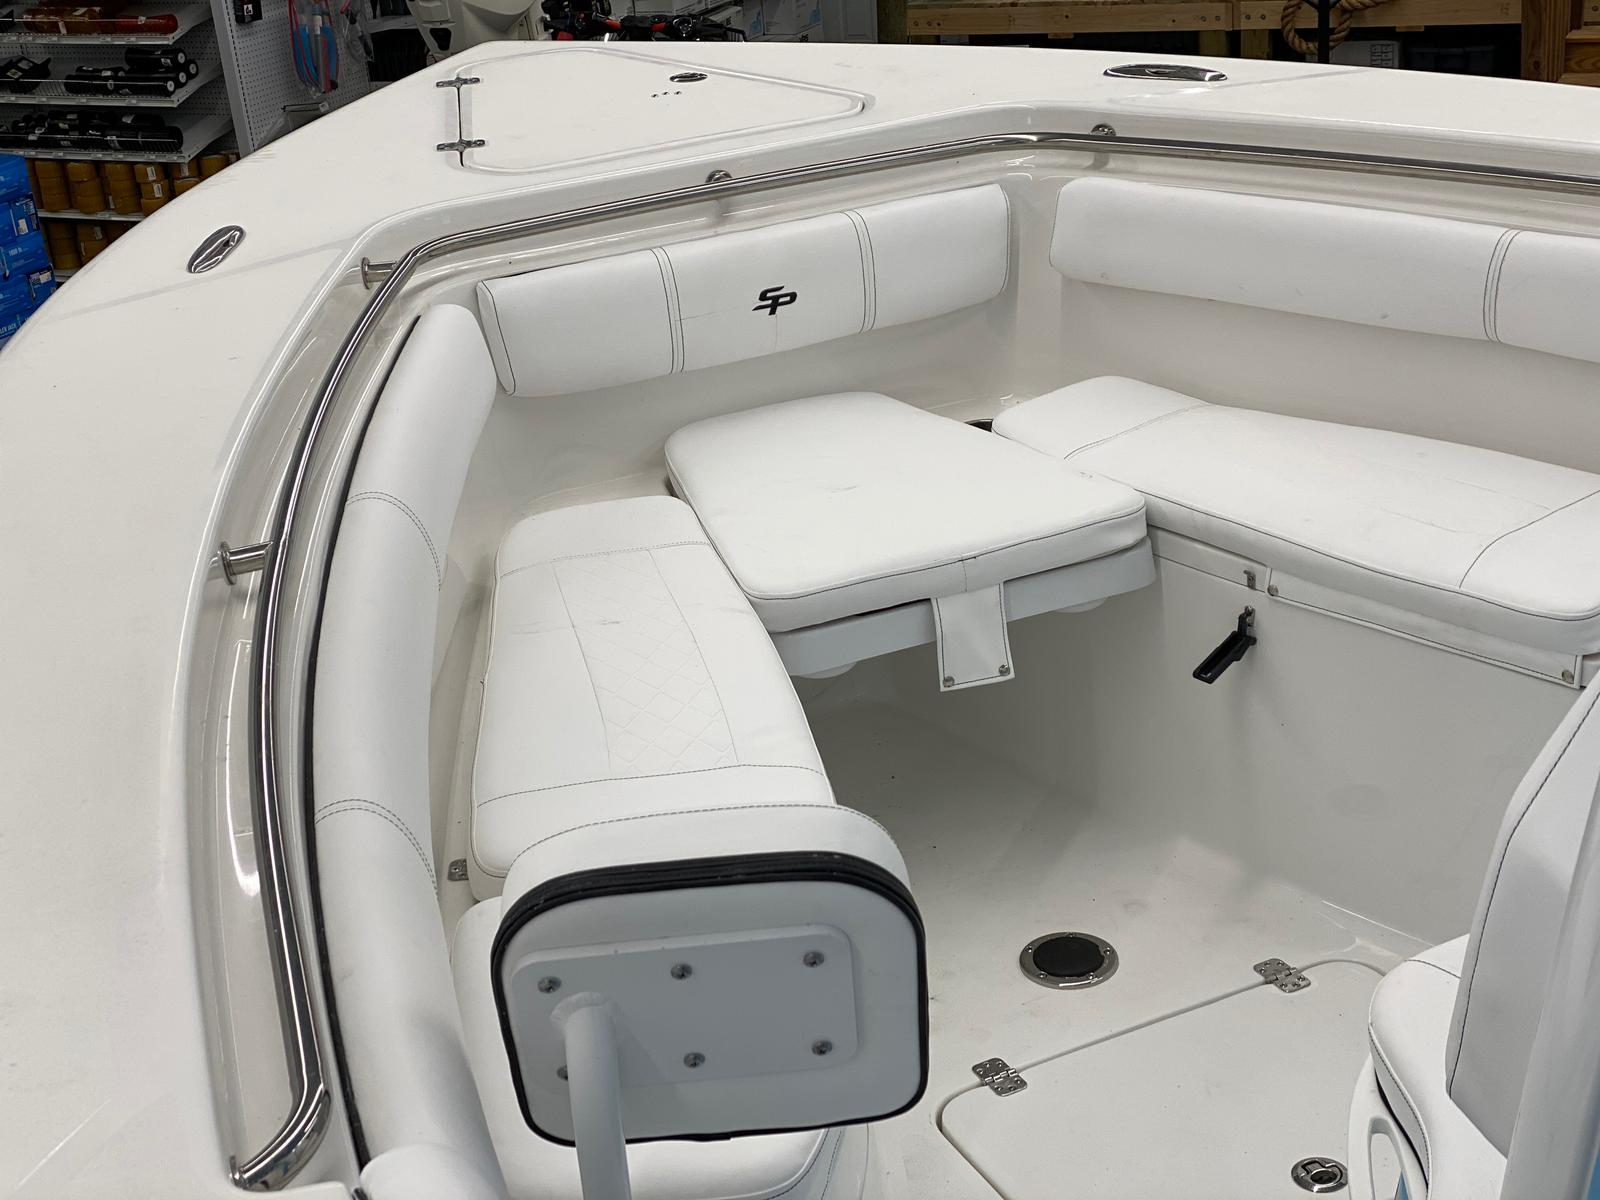 2021 Sea Pro boat for sale, model of the boat is 259 Deep V CC & Image # 4 of 7